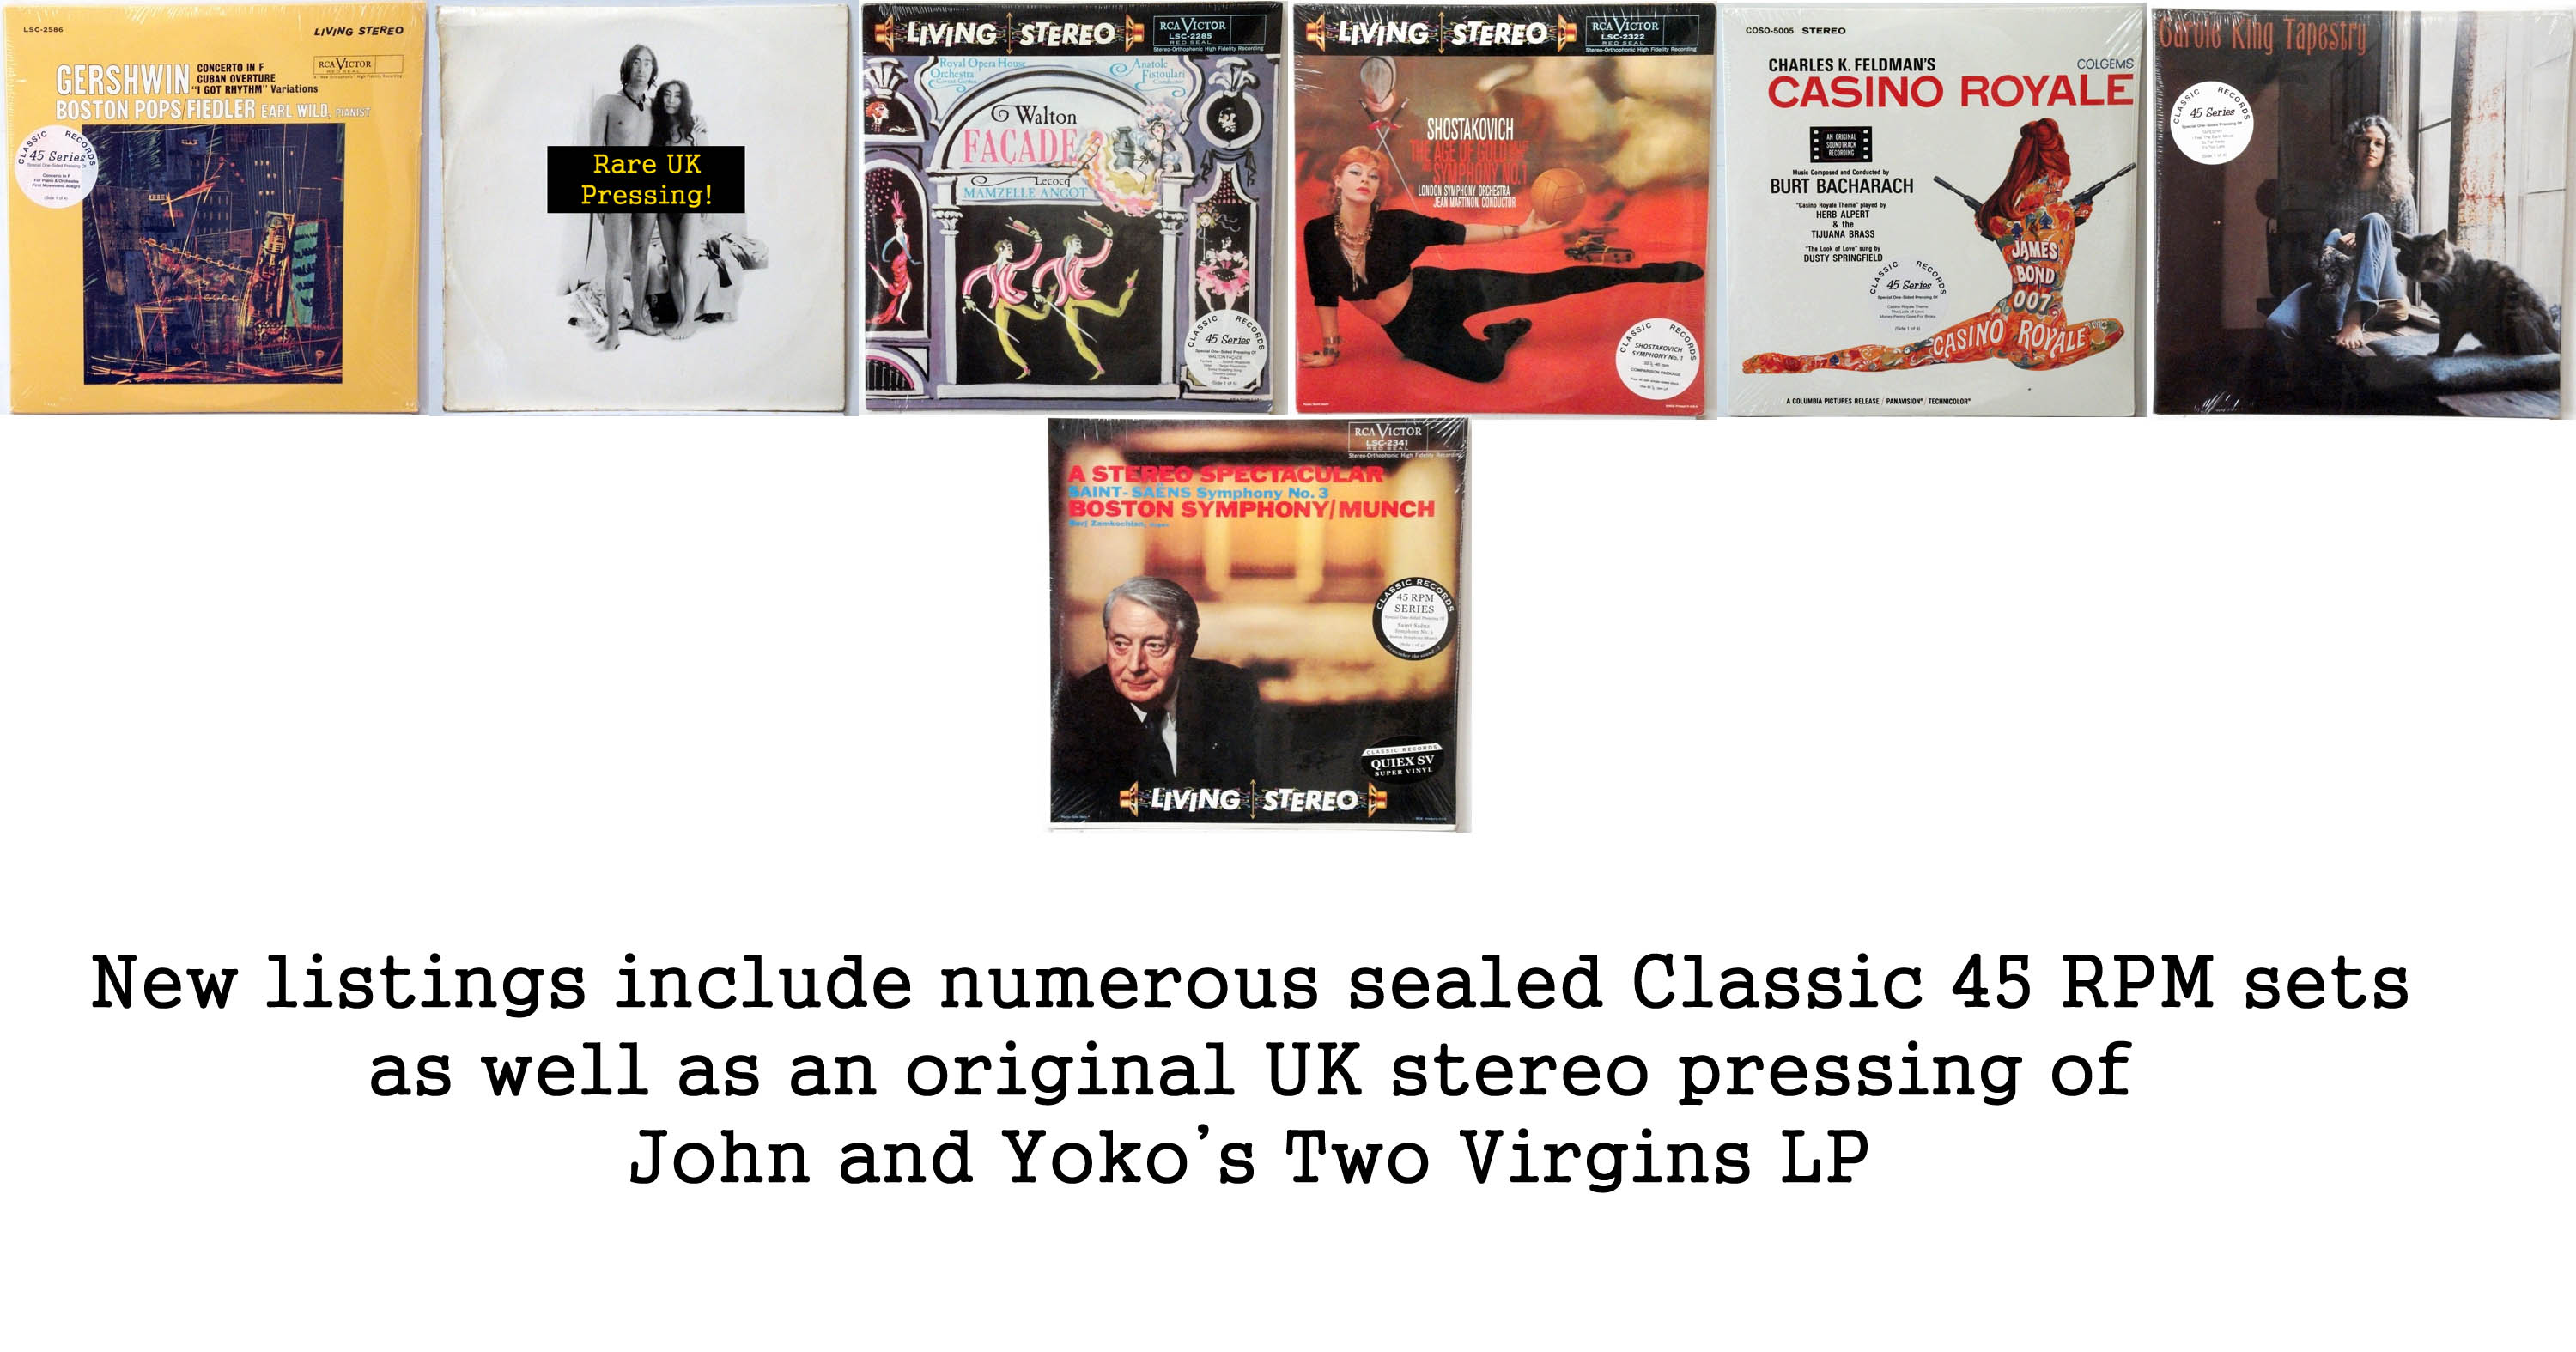 new rare records - classic records, two virgins